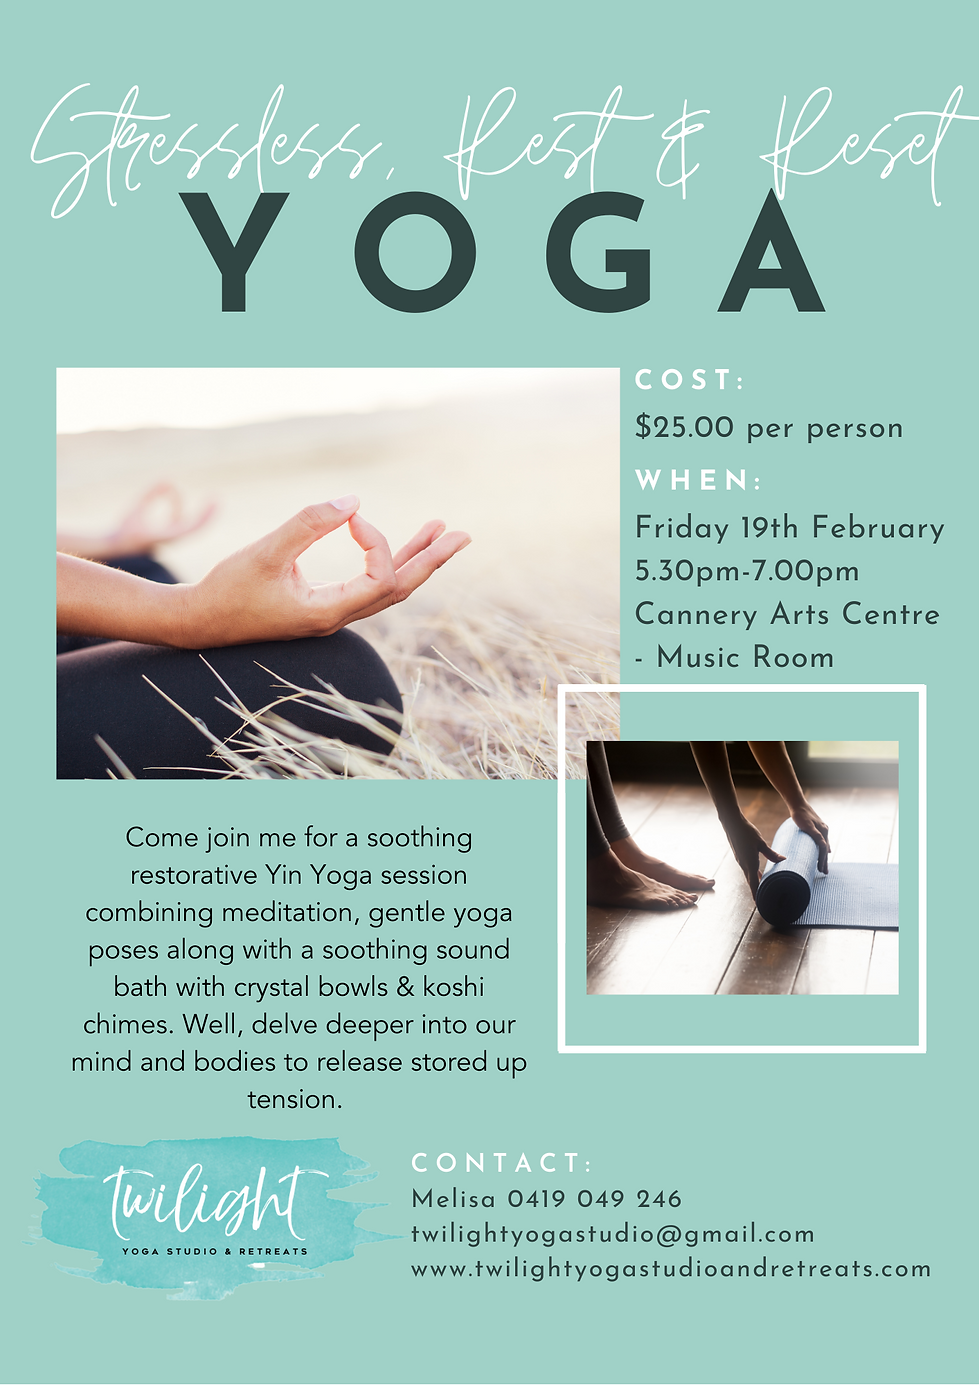 Stressless, Rest & Reset Yoga Flyer.png